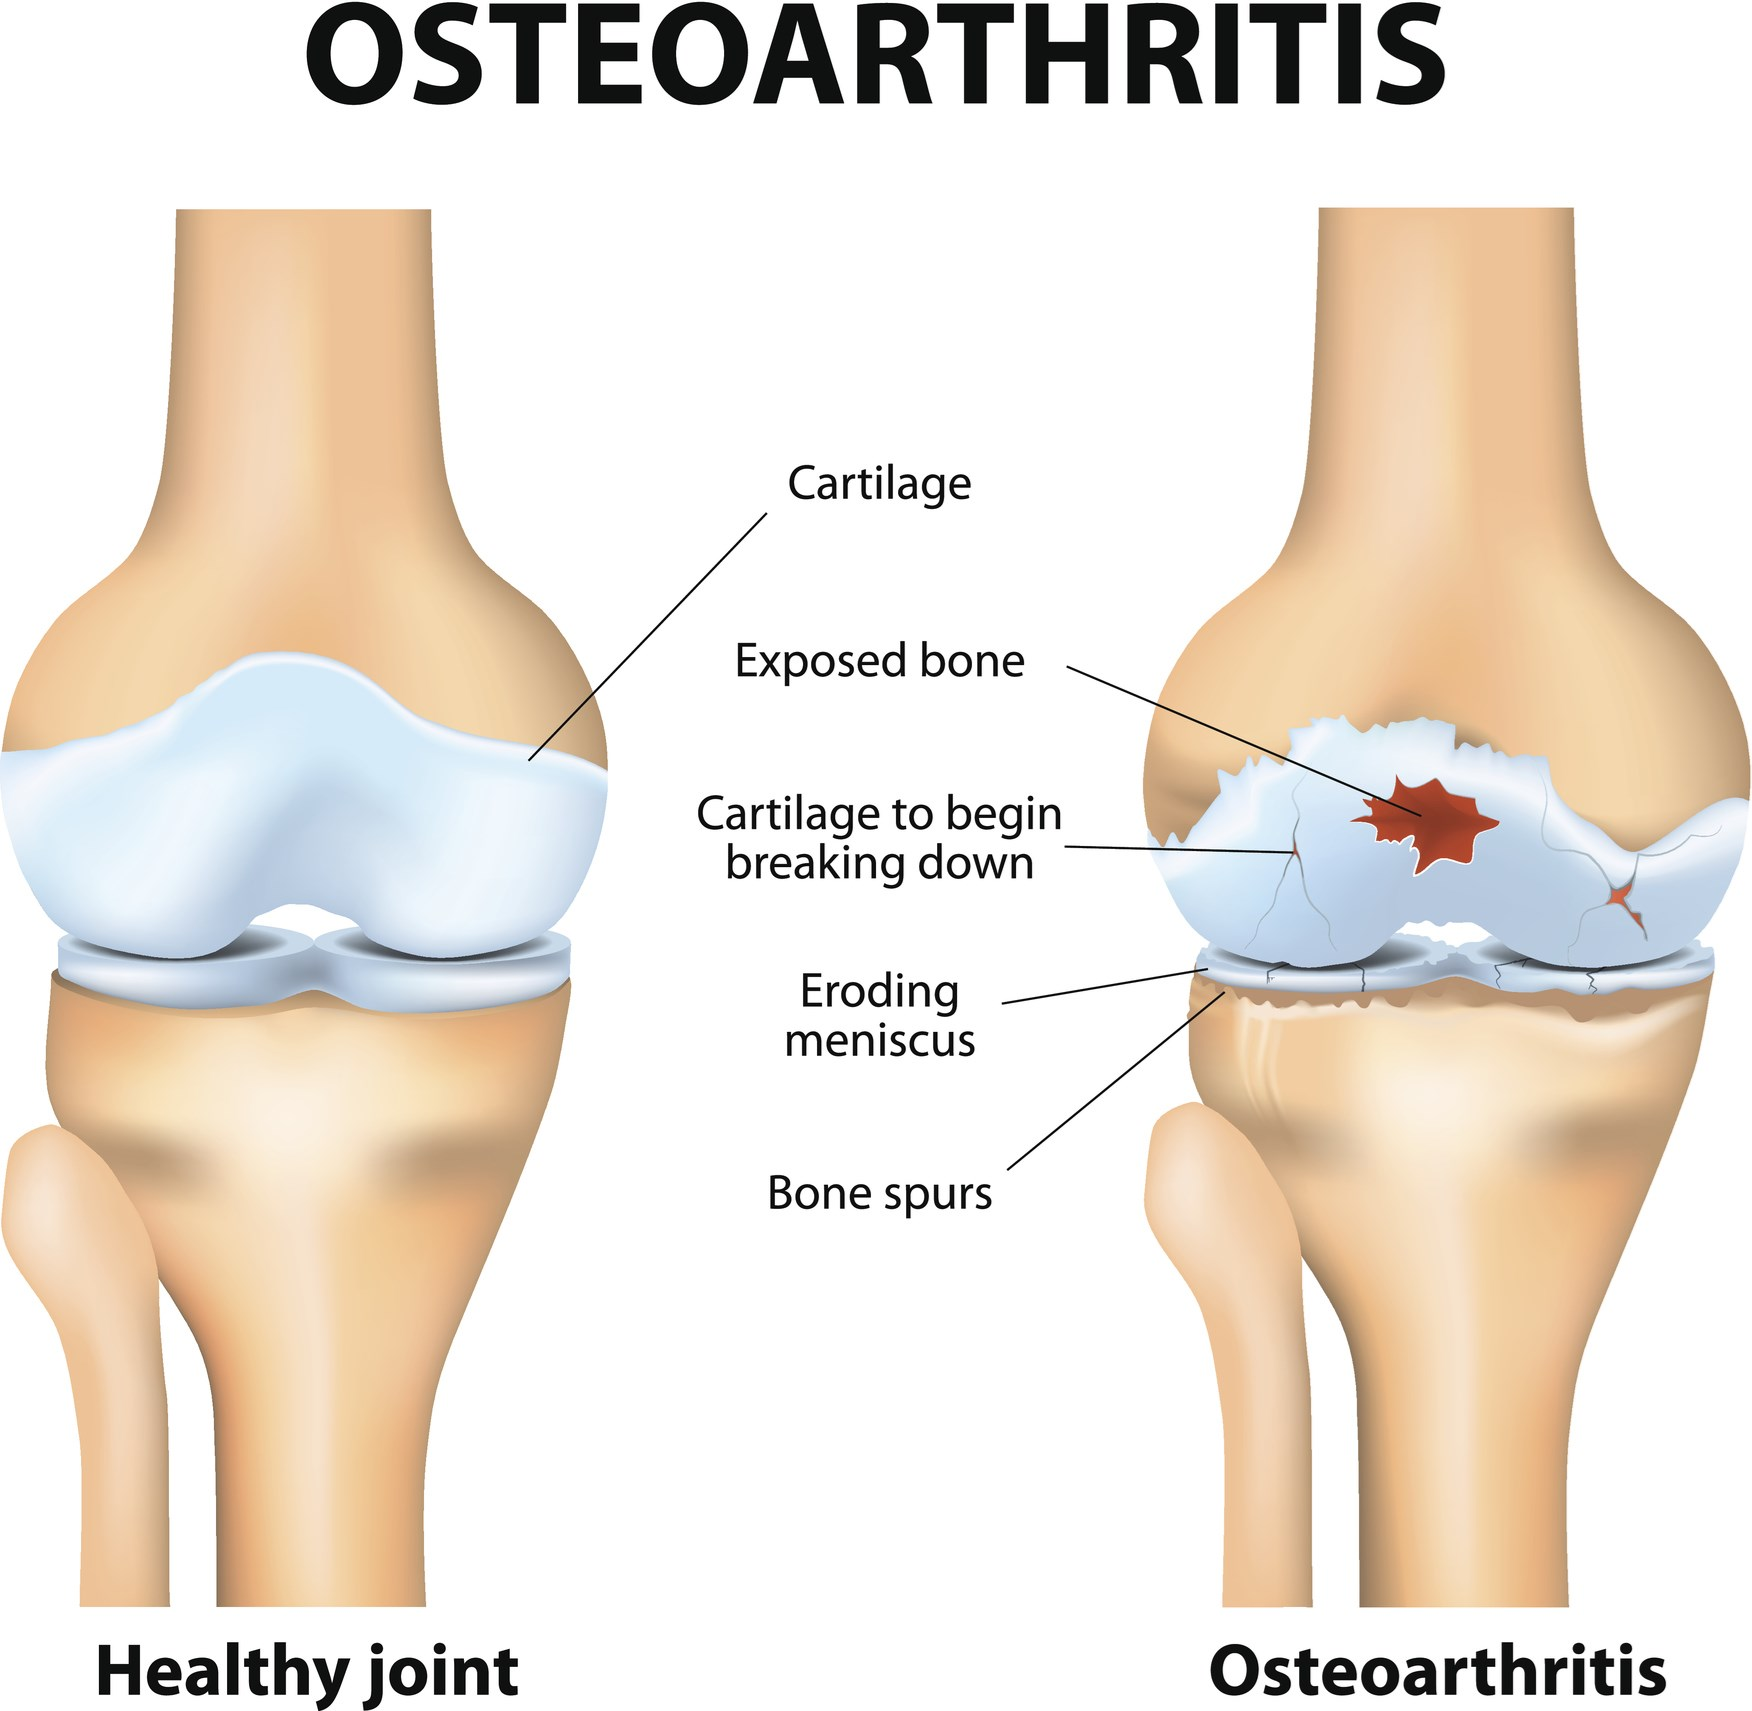 Lower Cartilage Degeneration With Weight Loss in OA